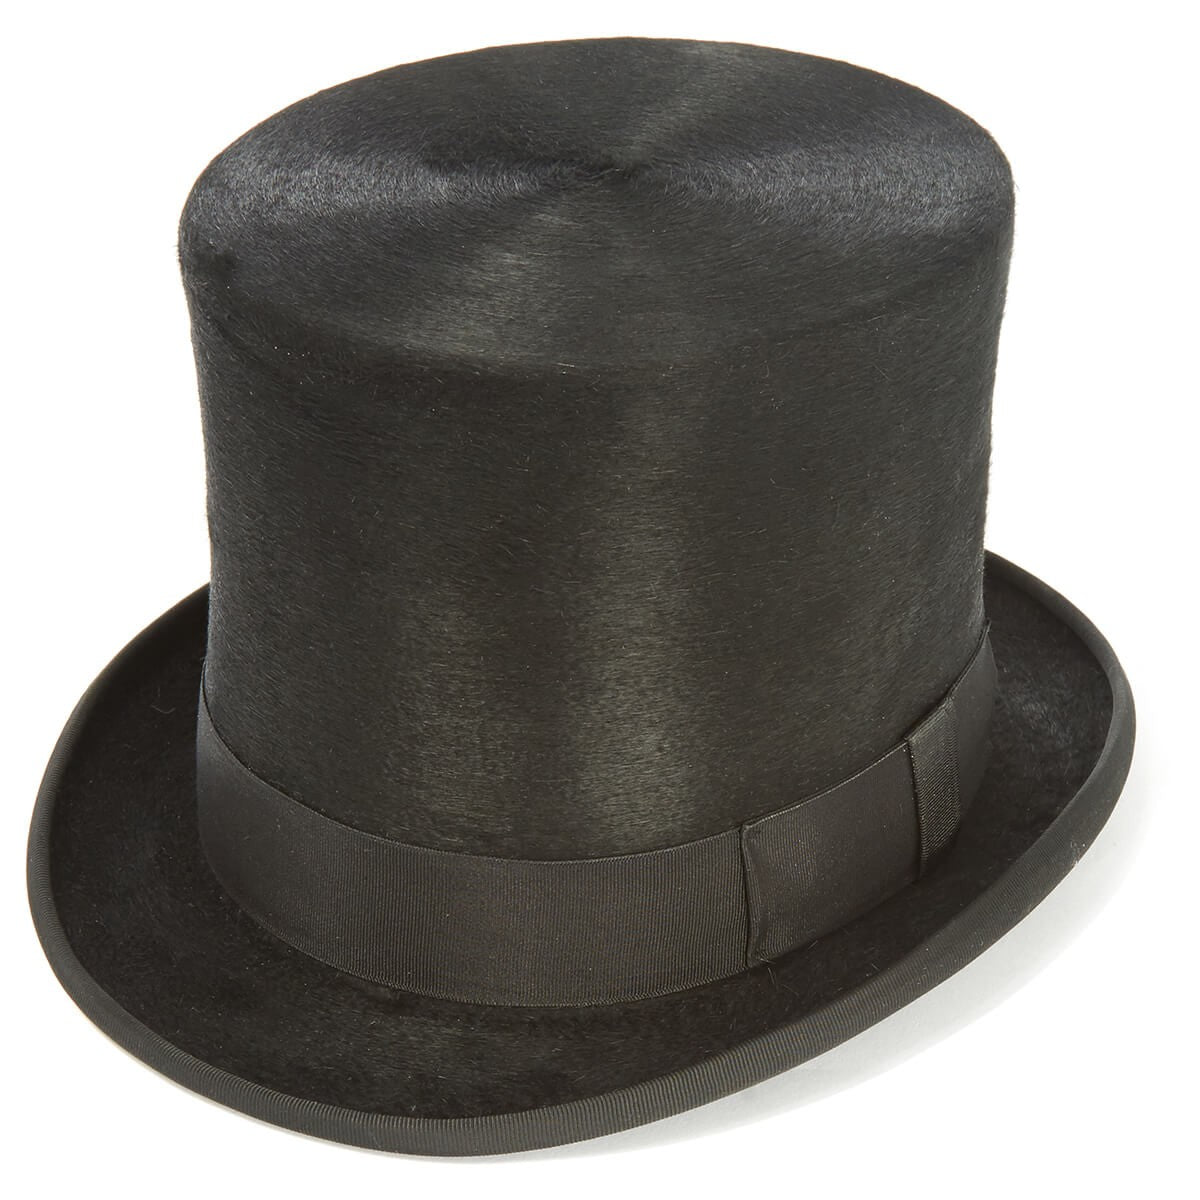 Christys' Taller Fur Felt Top Hat